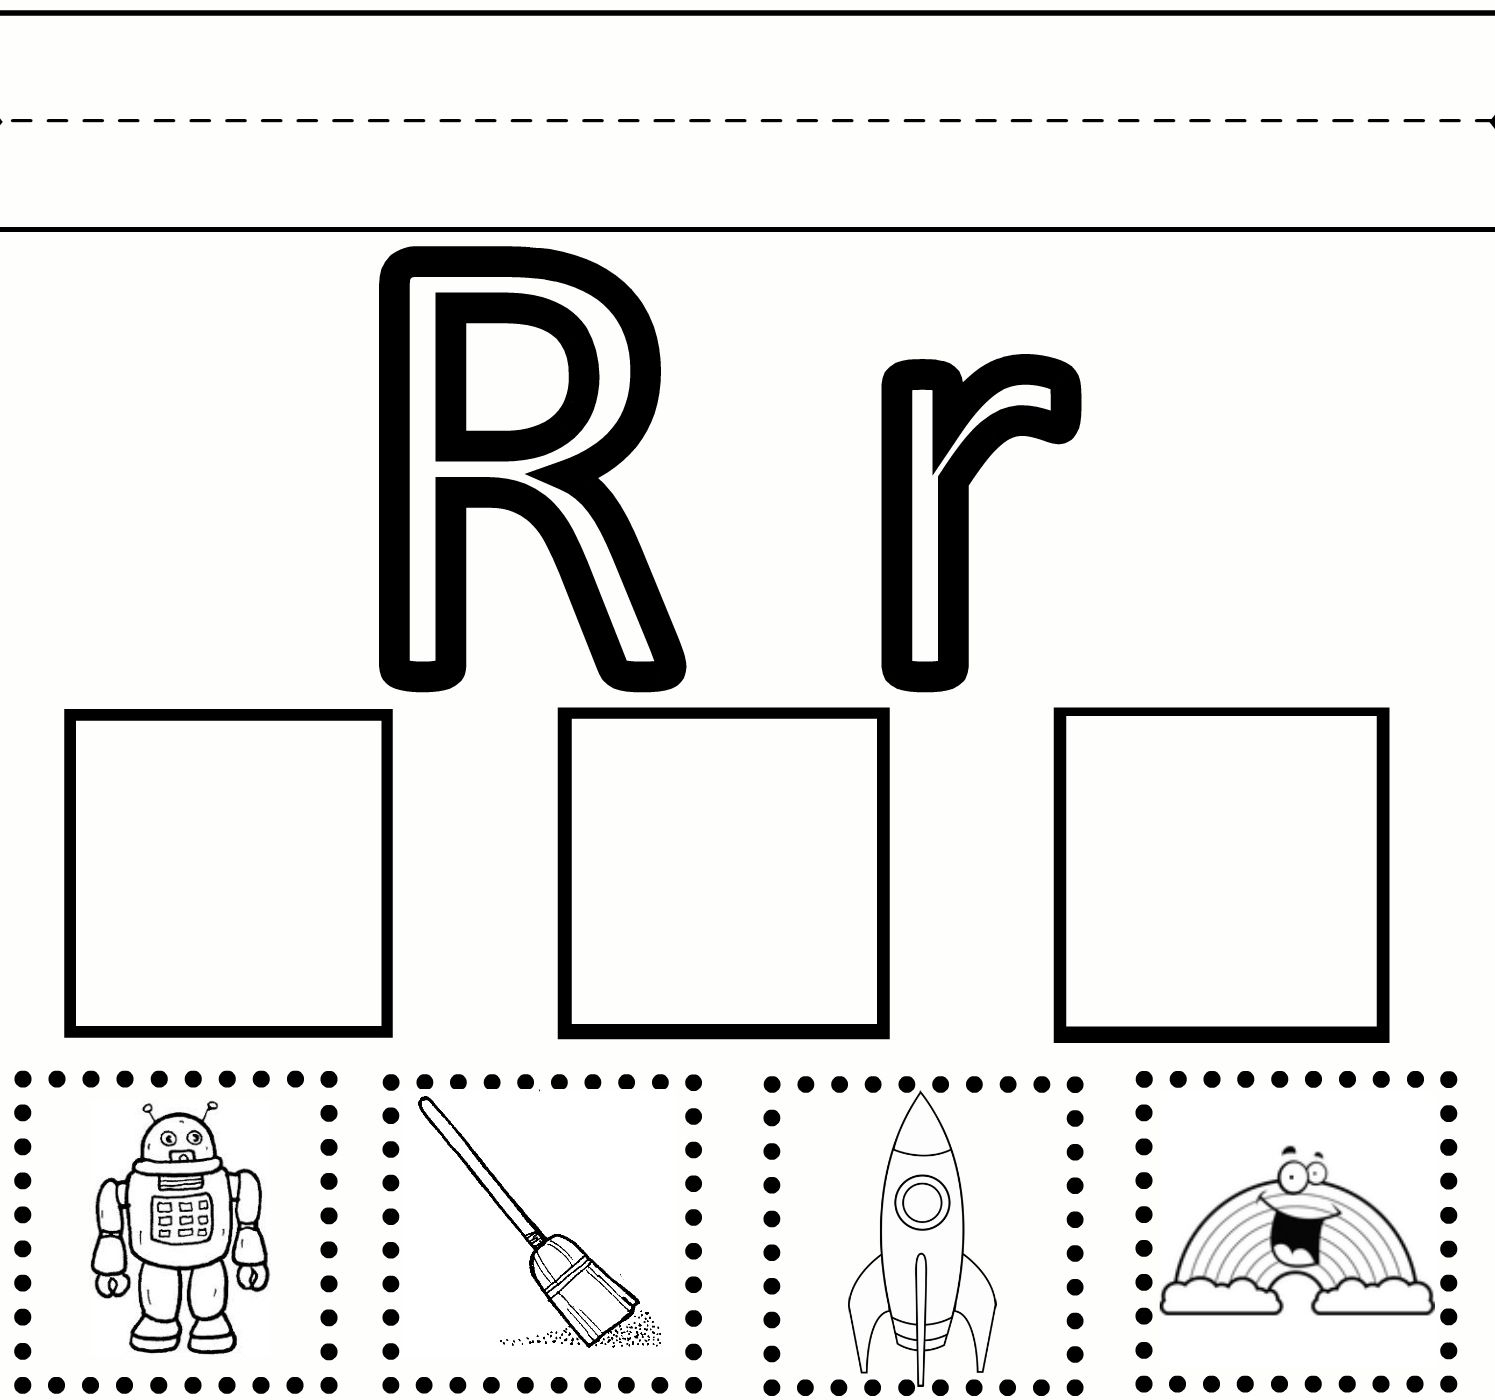 Letter R Preschool Worksheets | Preschool Learning – Letter within Letter R Worksheets Preschool Free